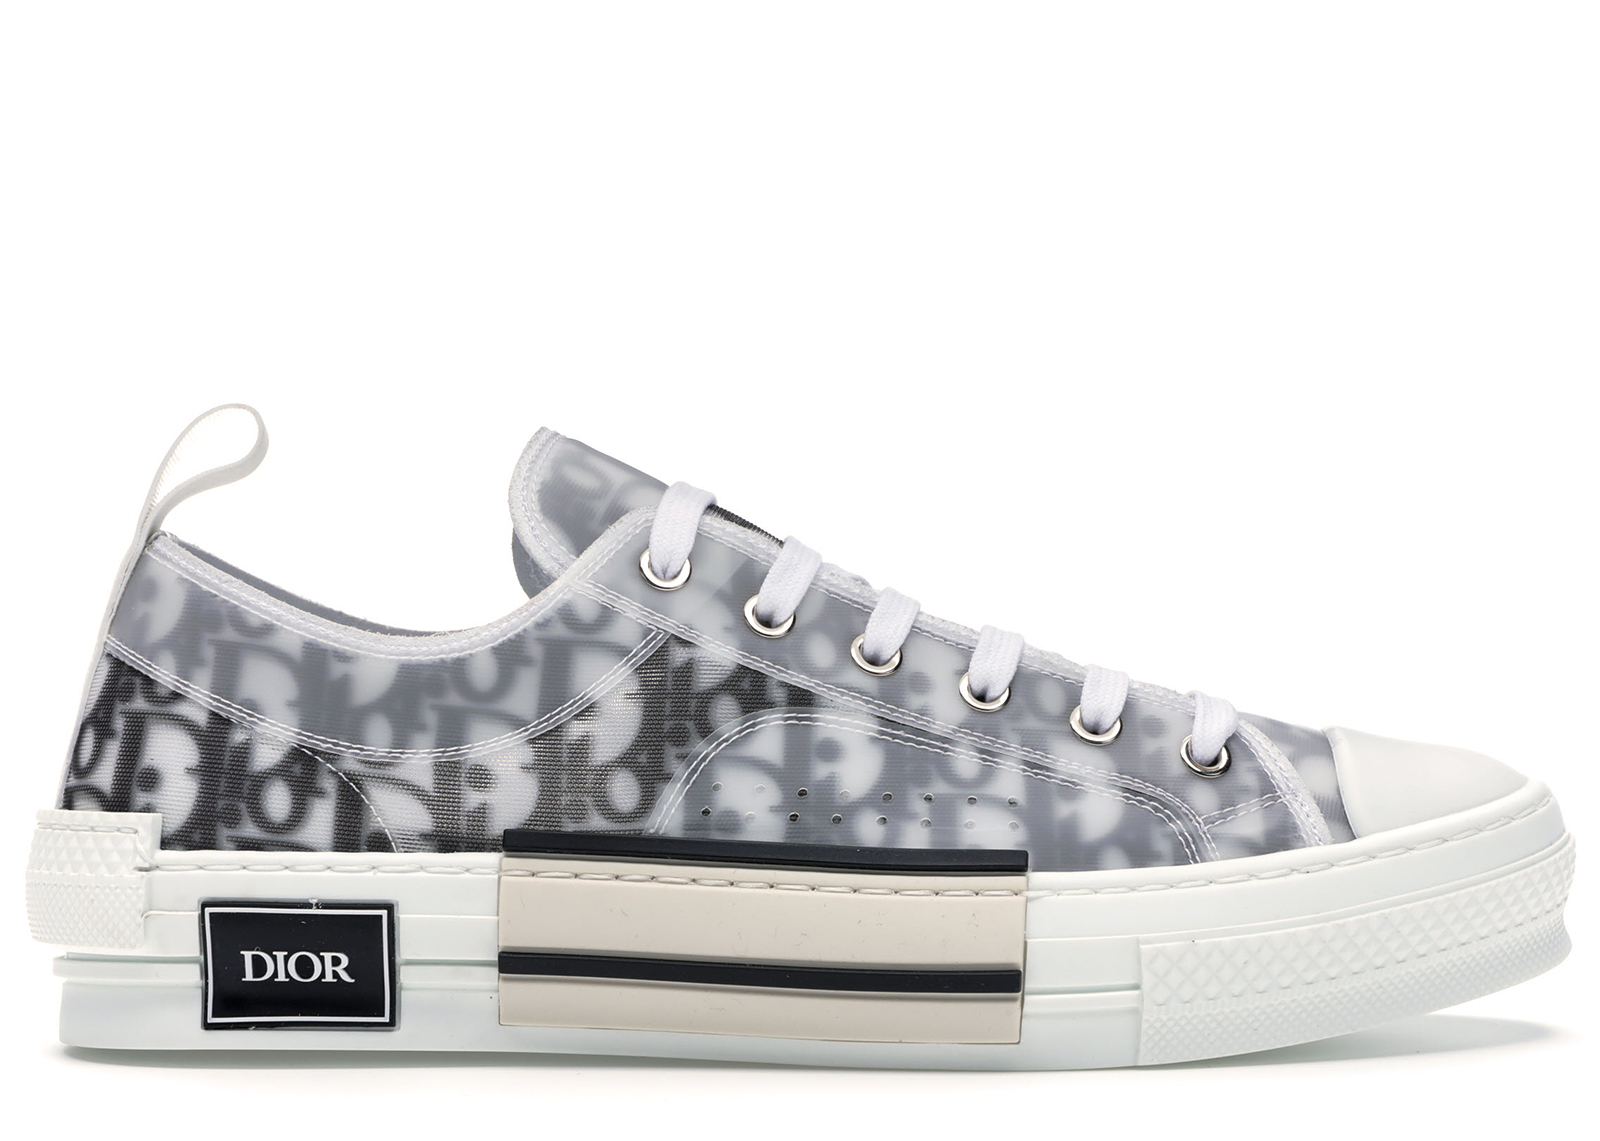 Buy Dior Shoes & Deadstock Sneakers